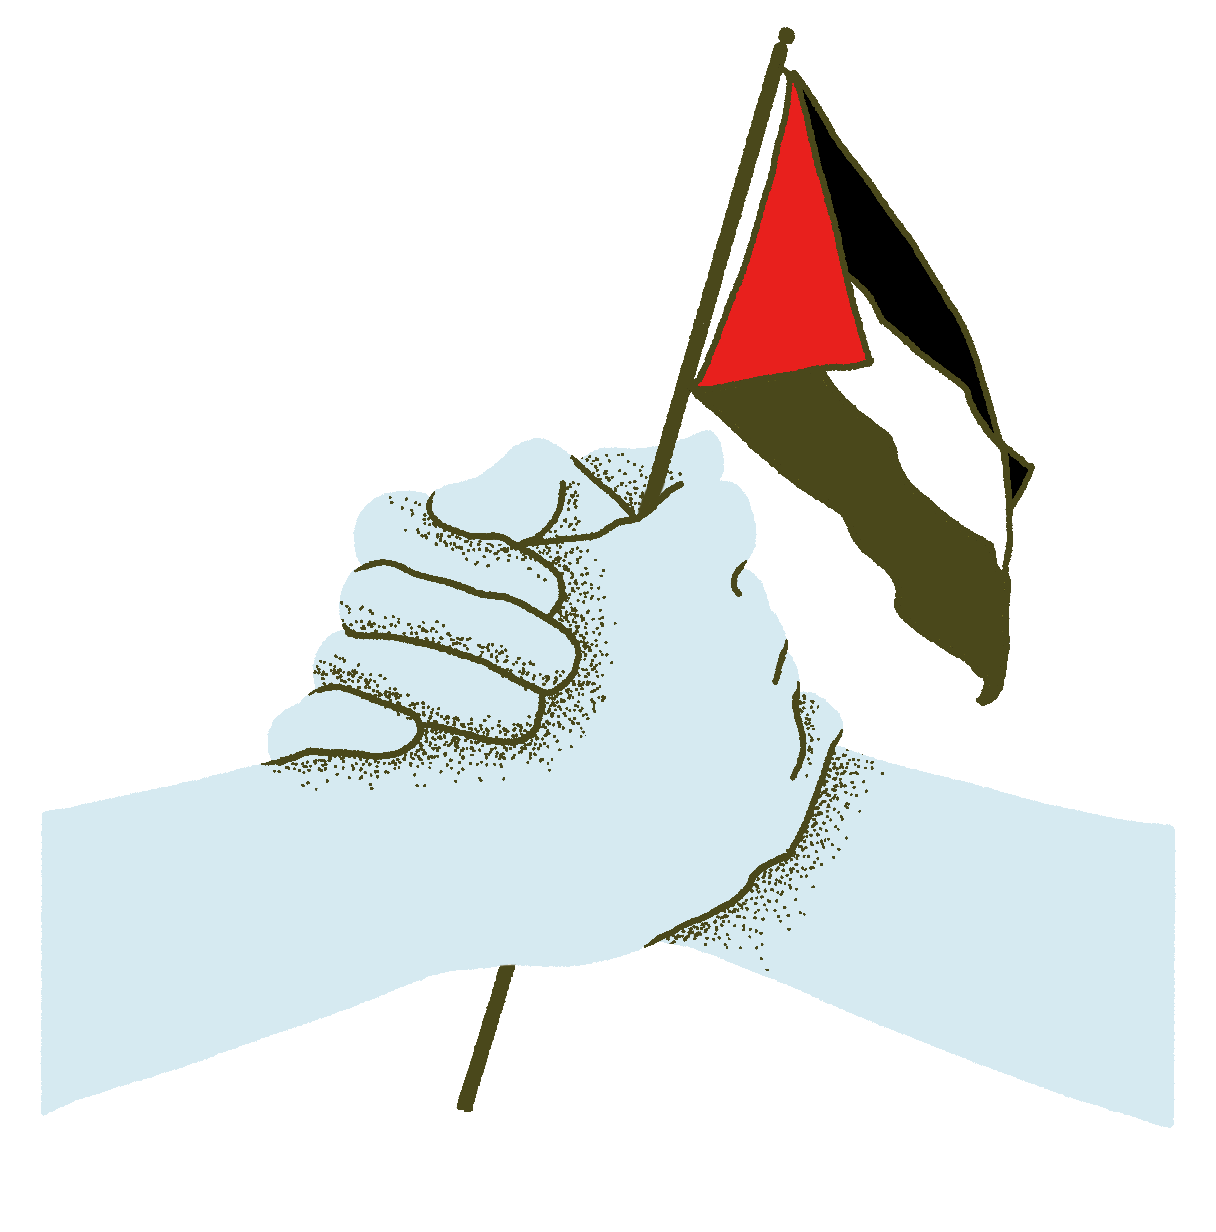 Two hands clasped, holding a Palestinian flag.